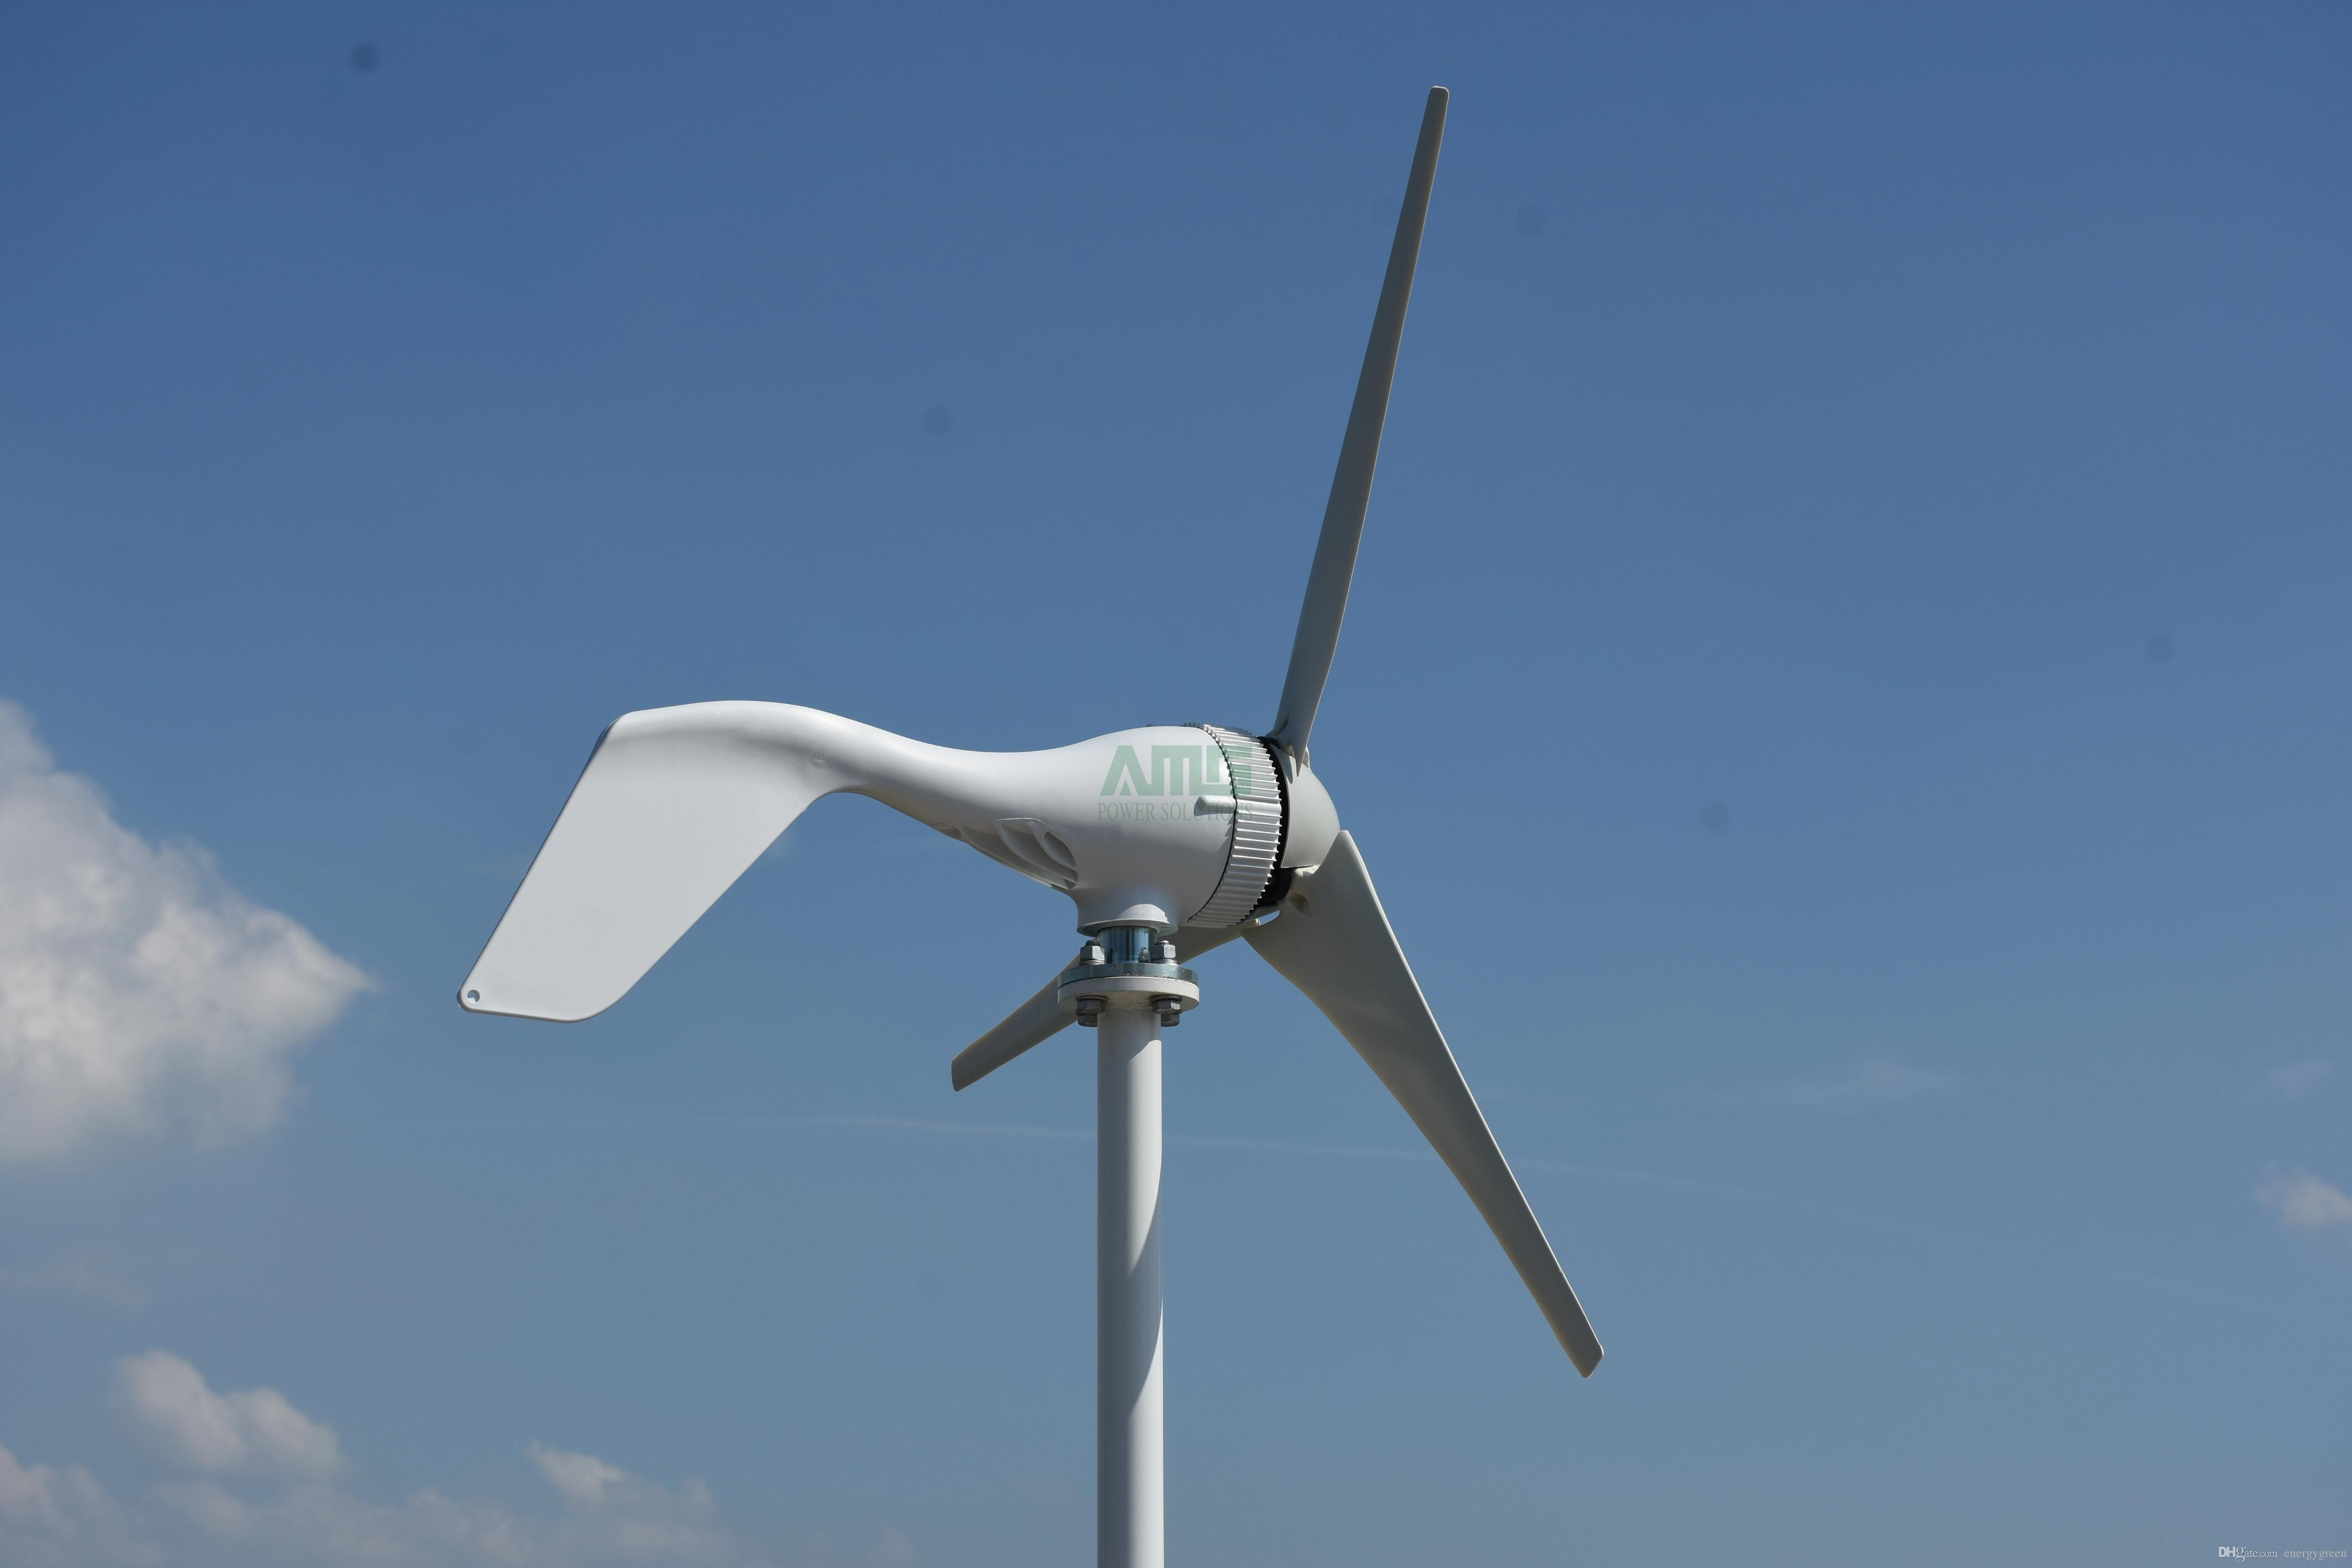 Hot selling 400w small wind turbine 3 blades optional with boost  controller,fit for home boats streetlights